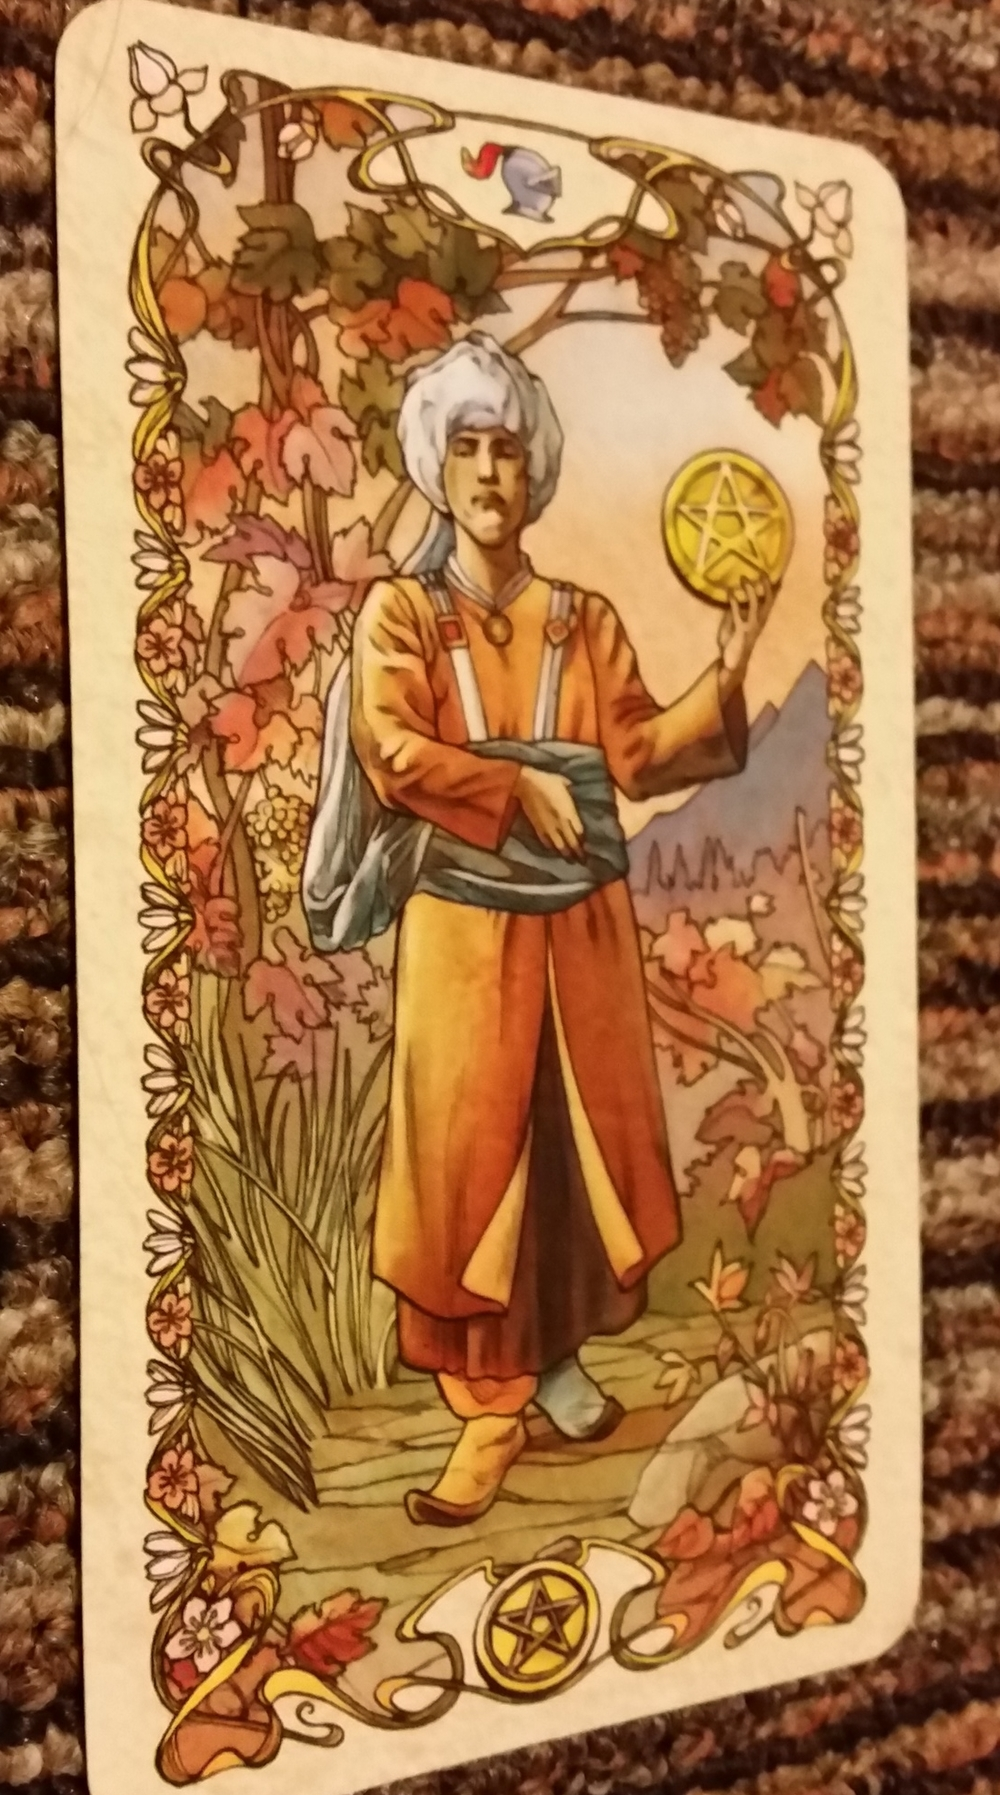 The Knave of Pentacles is wearing an orange shoe and a blue shoe: Broncos colors.